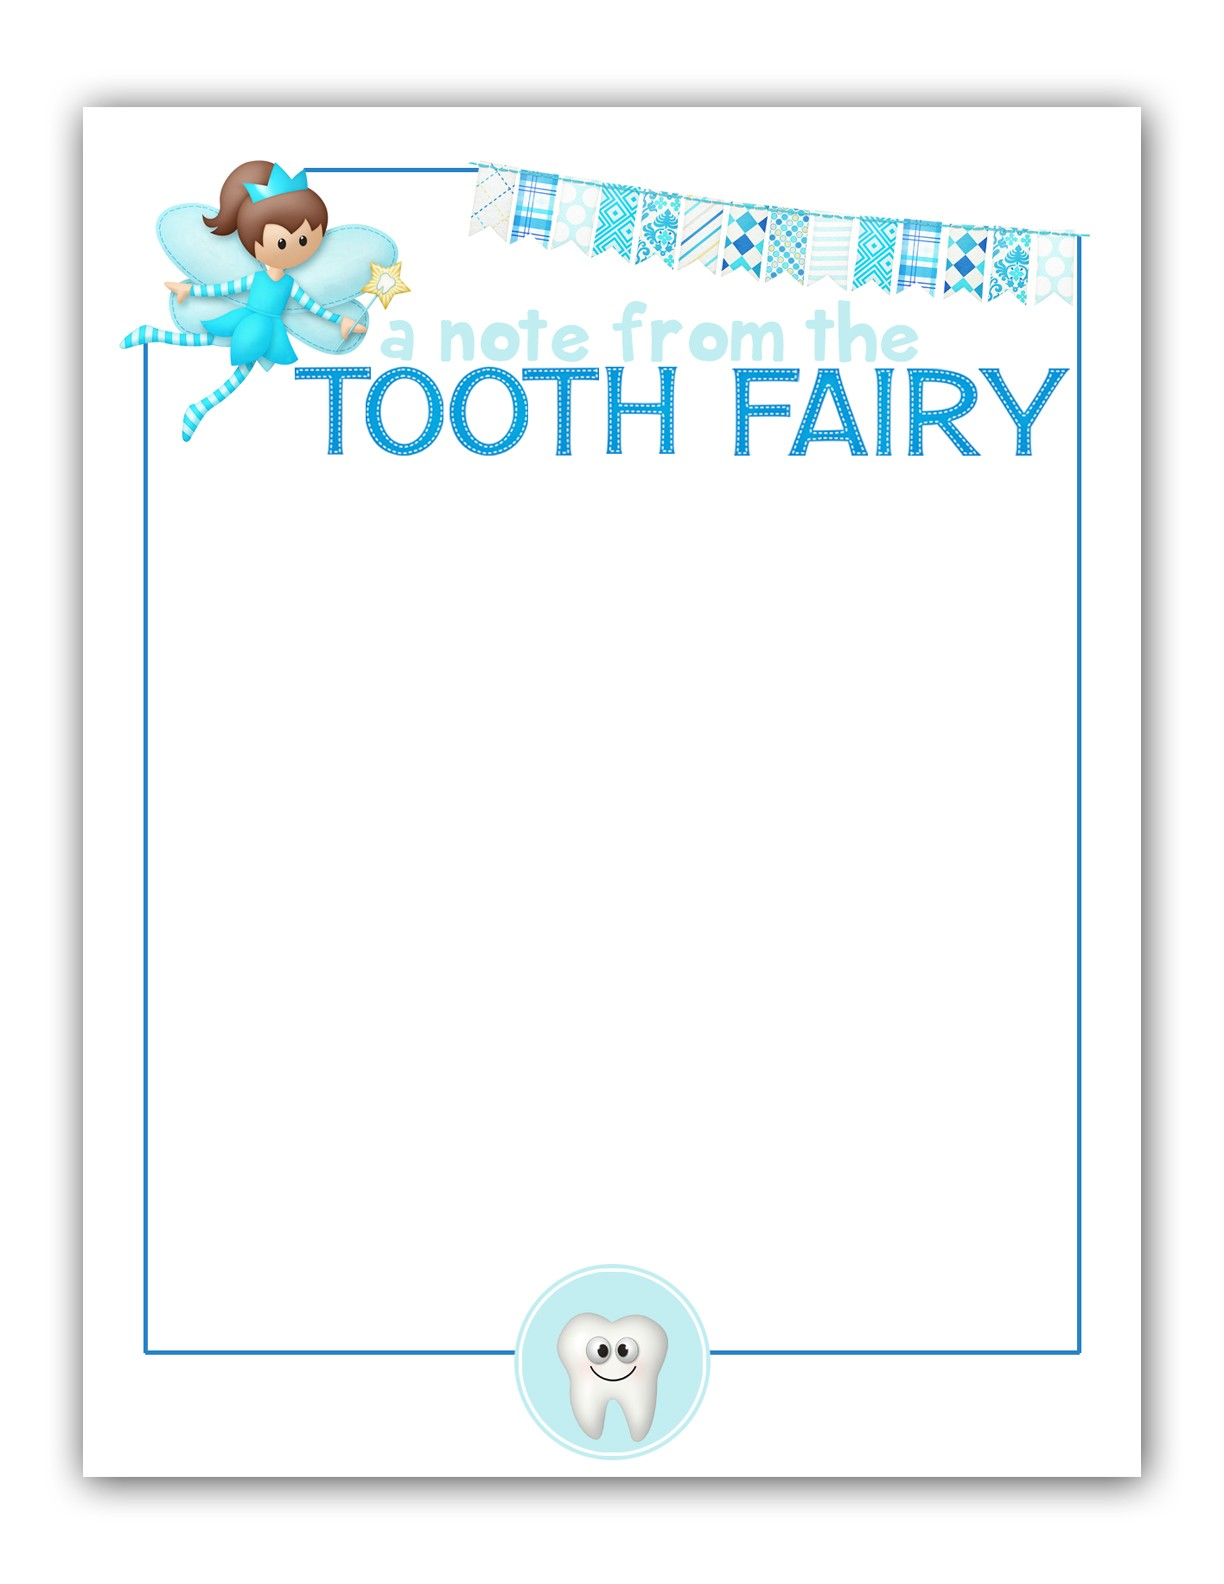 free tooth fairy letter template download  M|K Designs Blog: Tooth Fairy Stationary - FREE Printable - free tooth fairy letter template download